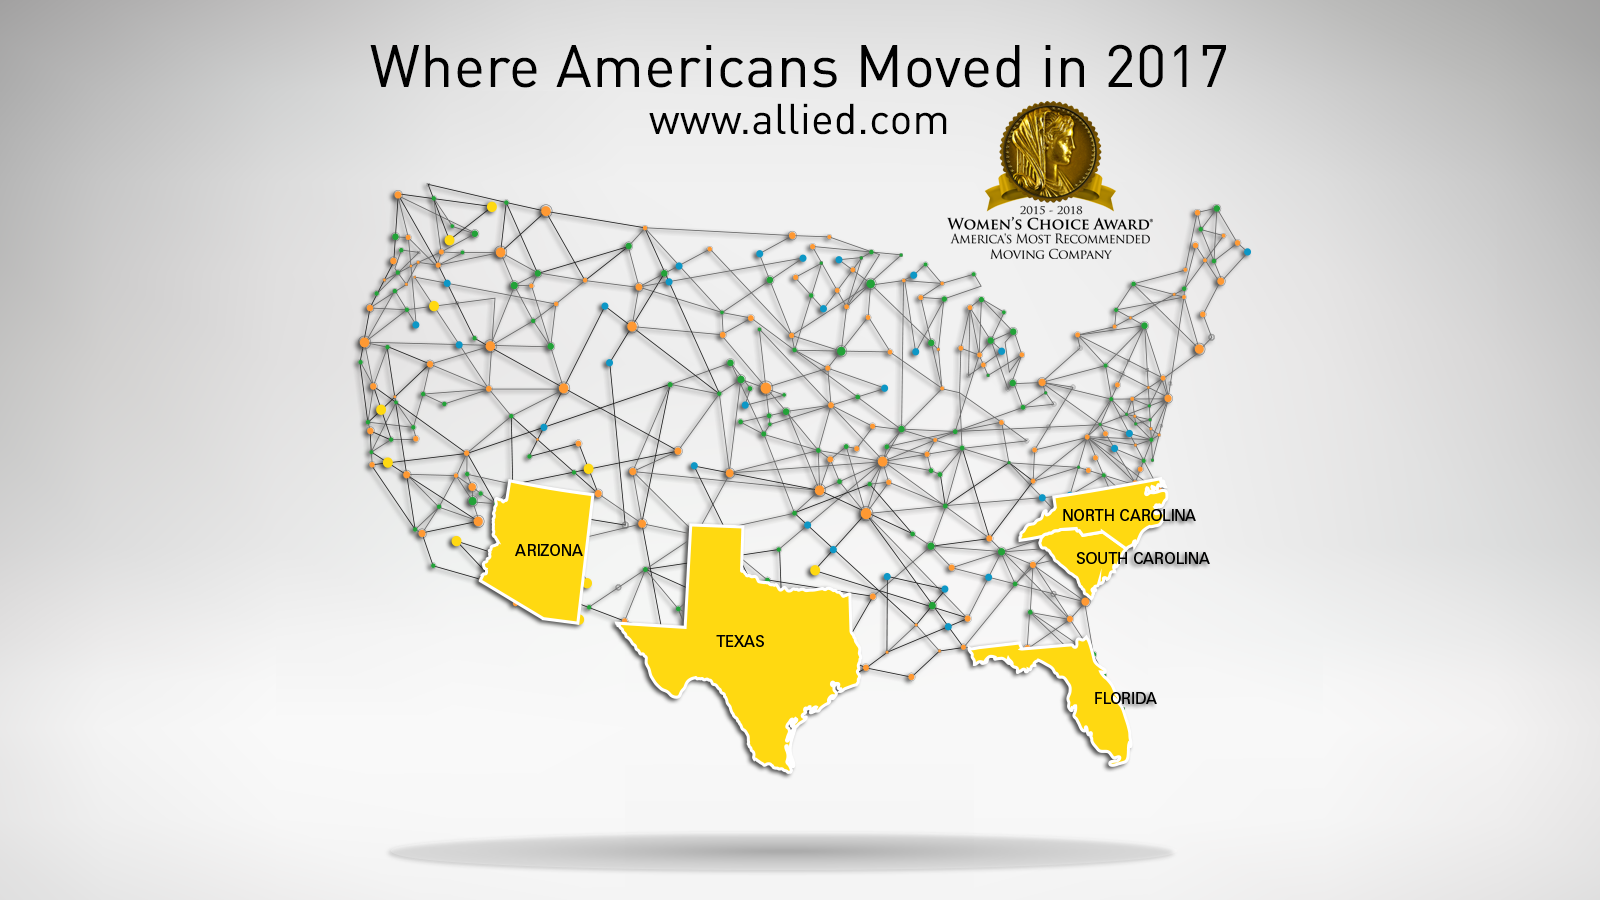 Top Moving Destinations for 2017 on florida airlines map, florida wedding map, florida caribbean map, florida fishing map, florida routes map, florida airports map, florida museums map, florida adventure map, florida tourism map, florida people map, florida reference map, florida travel map, florida art map, florida history map, florida entertainment map, florida general map, florida weather map, florida technology map, florida family map, florida golf map,